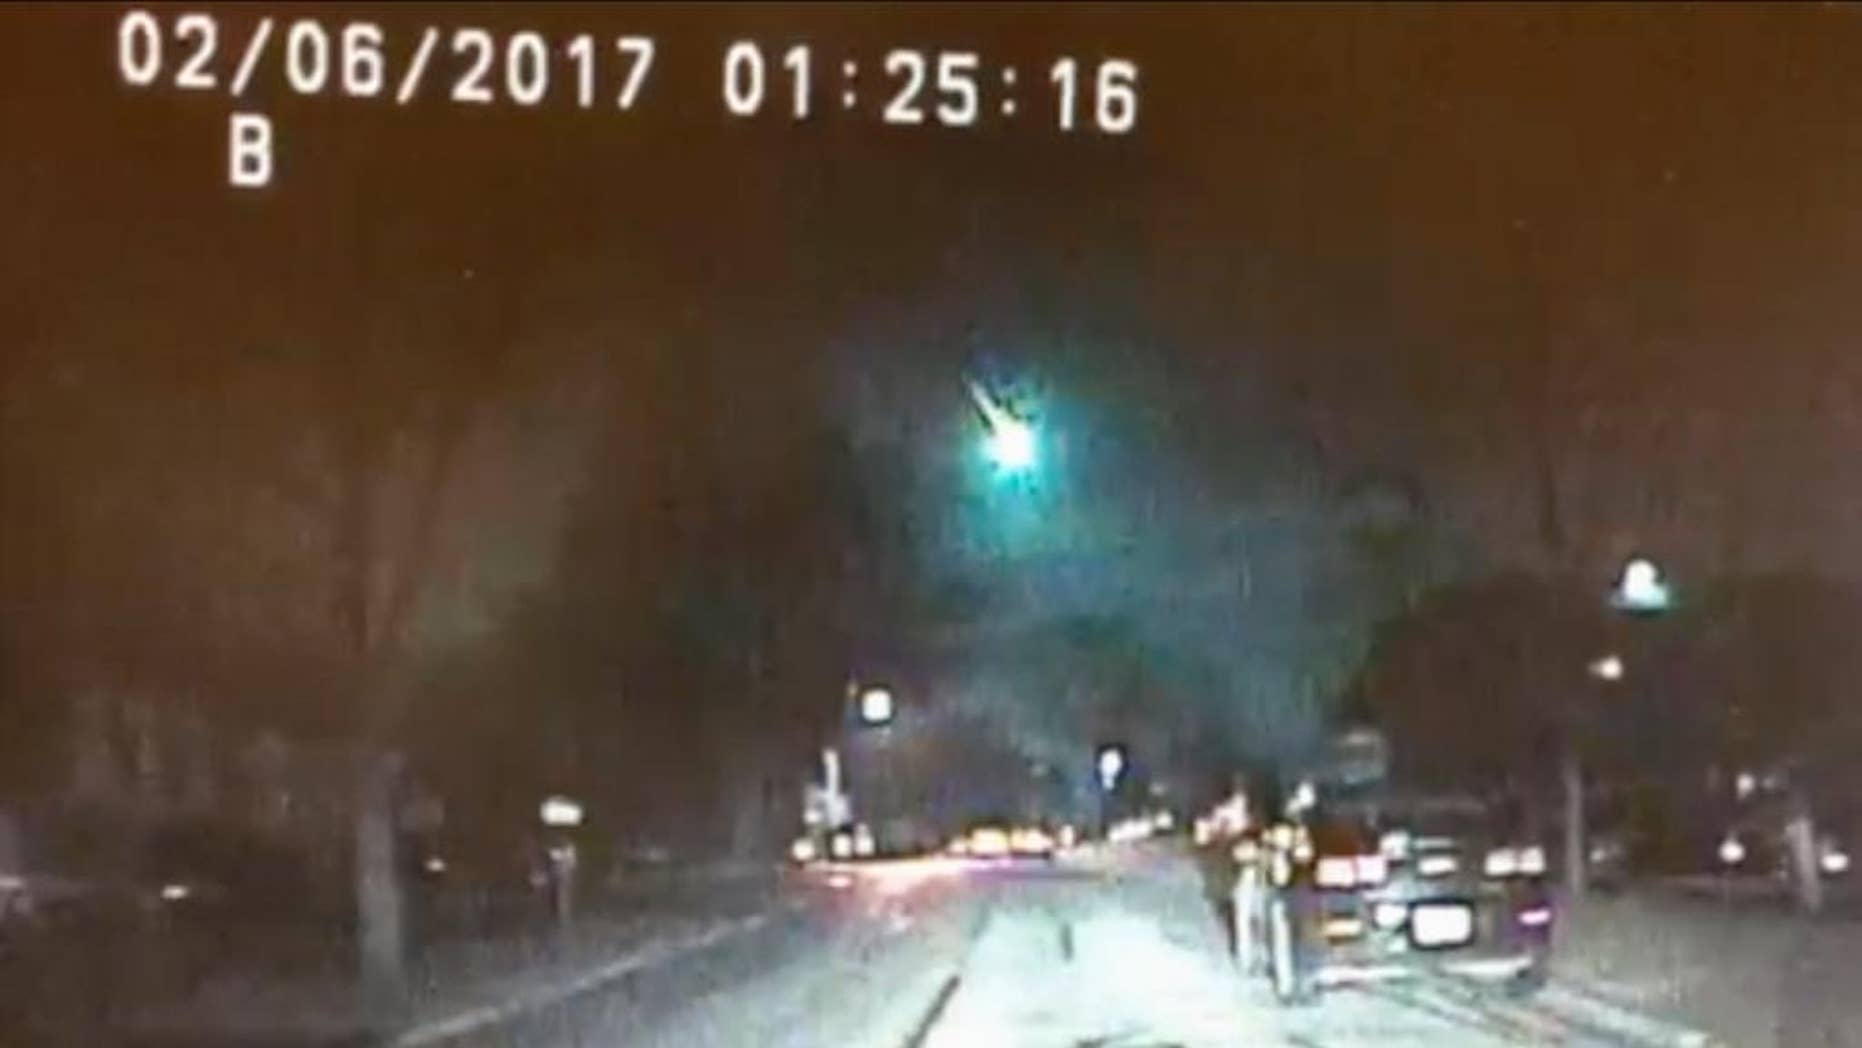 This image from a dashcam video provided by the Lisle Police Department in Lisle, Ill., shows a meteor as it streaked over Lake Michigan early Monday morning, Feb. 6, 2017. The meteor lit up the sky across several states in the Midwest. (Lisle (Ill.) Police Department via AP)